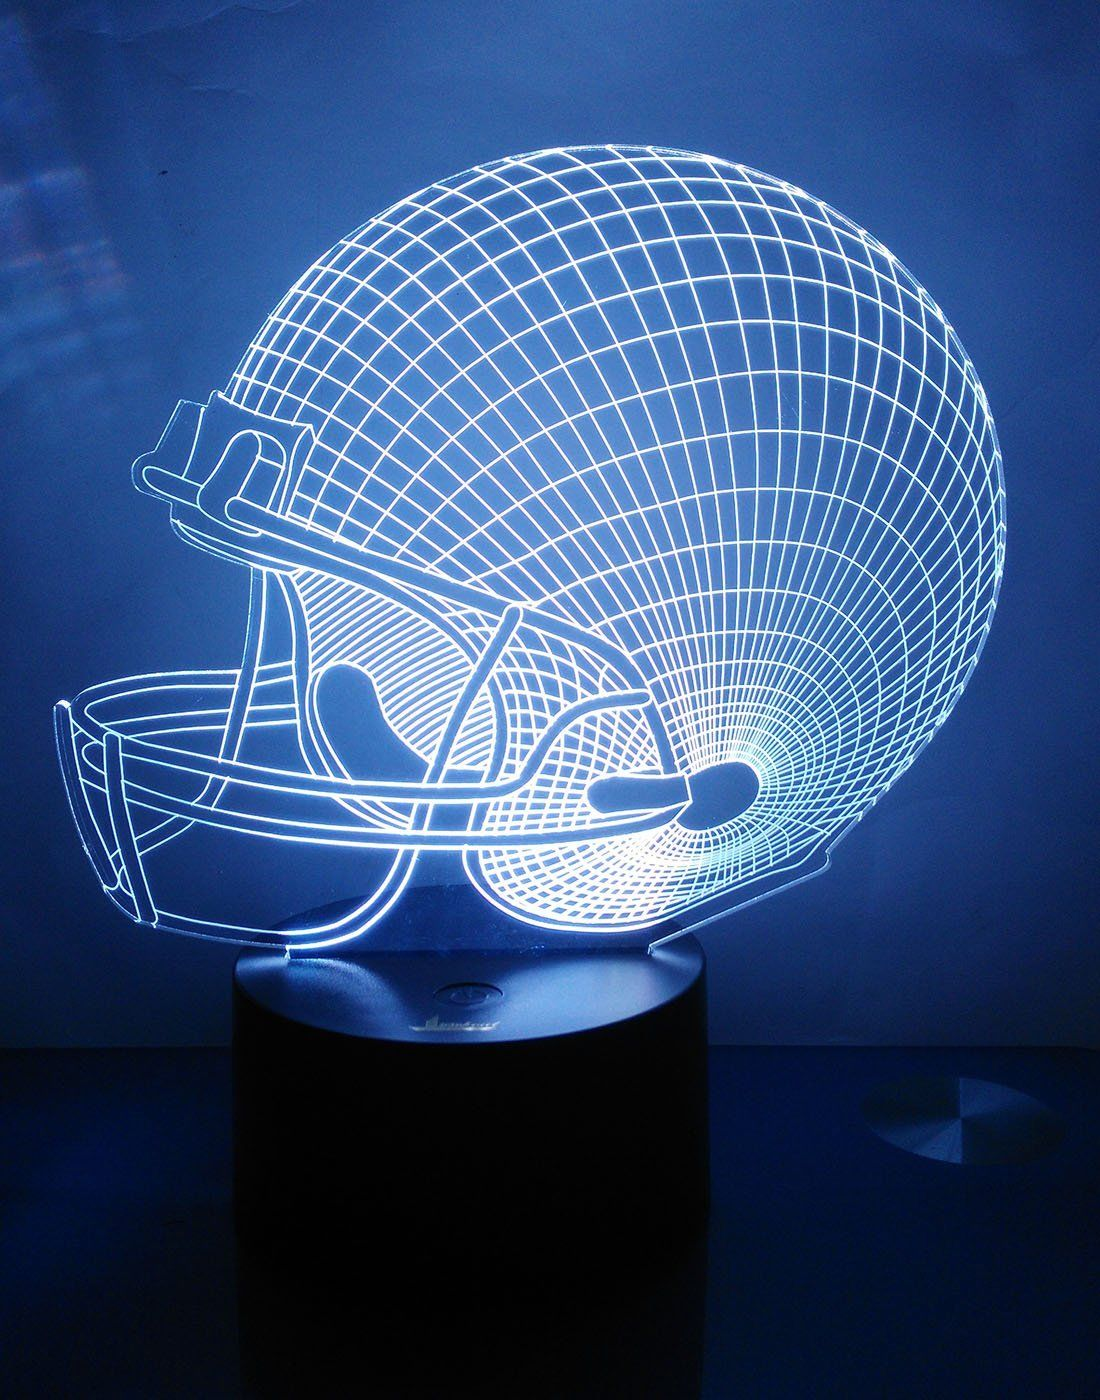 Lamp Night Nightlight Football Helmet Desk Lamp With 7 Colors 3D Glow Led Lamp Home Decor Usb Cable